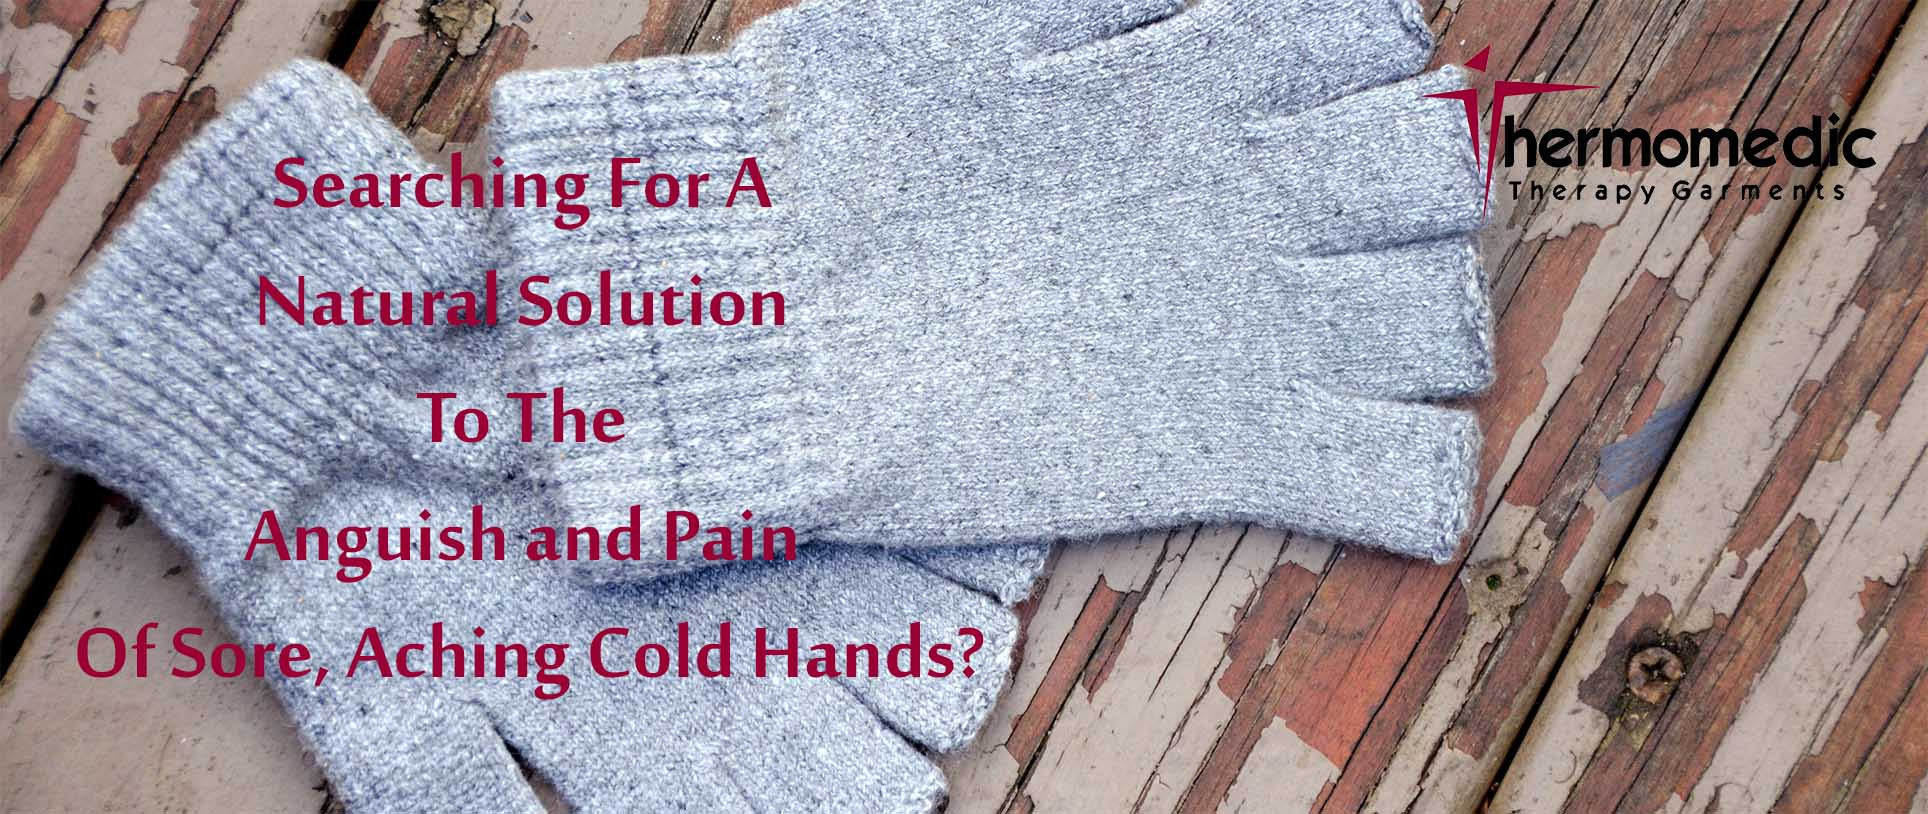 What's the best treatment for Raynaud's Disease?